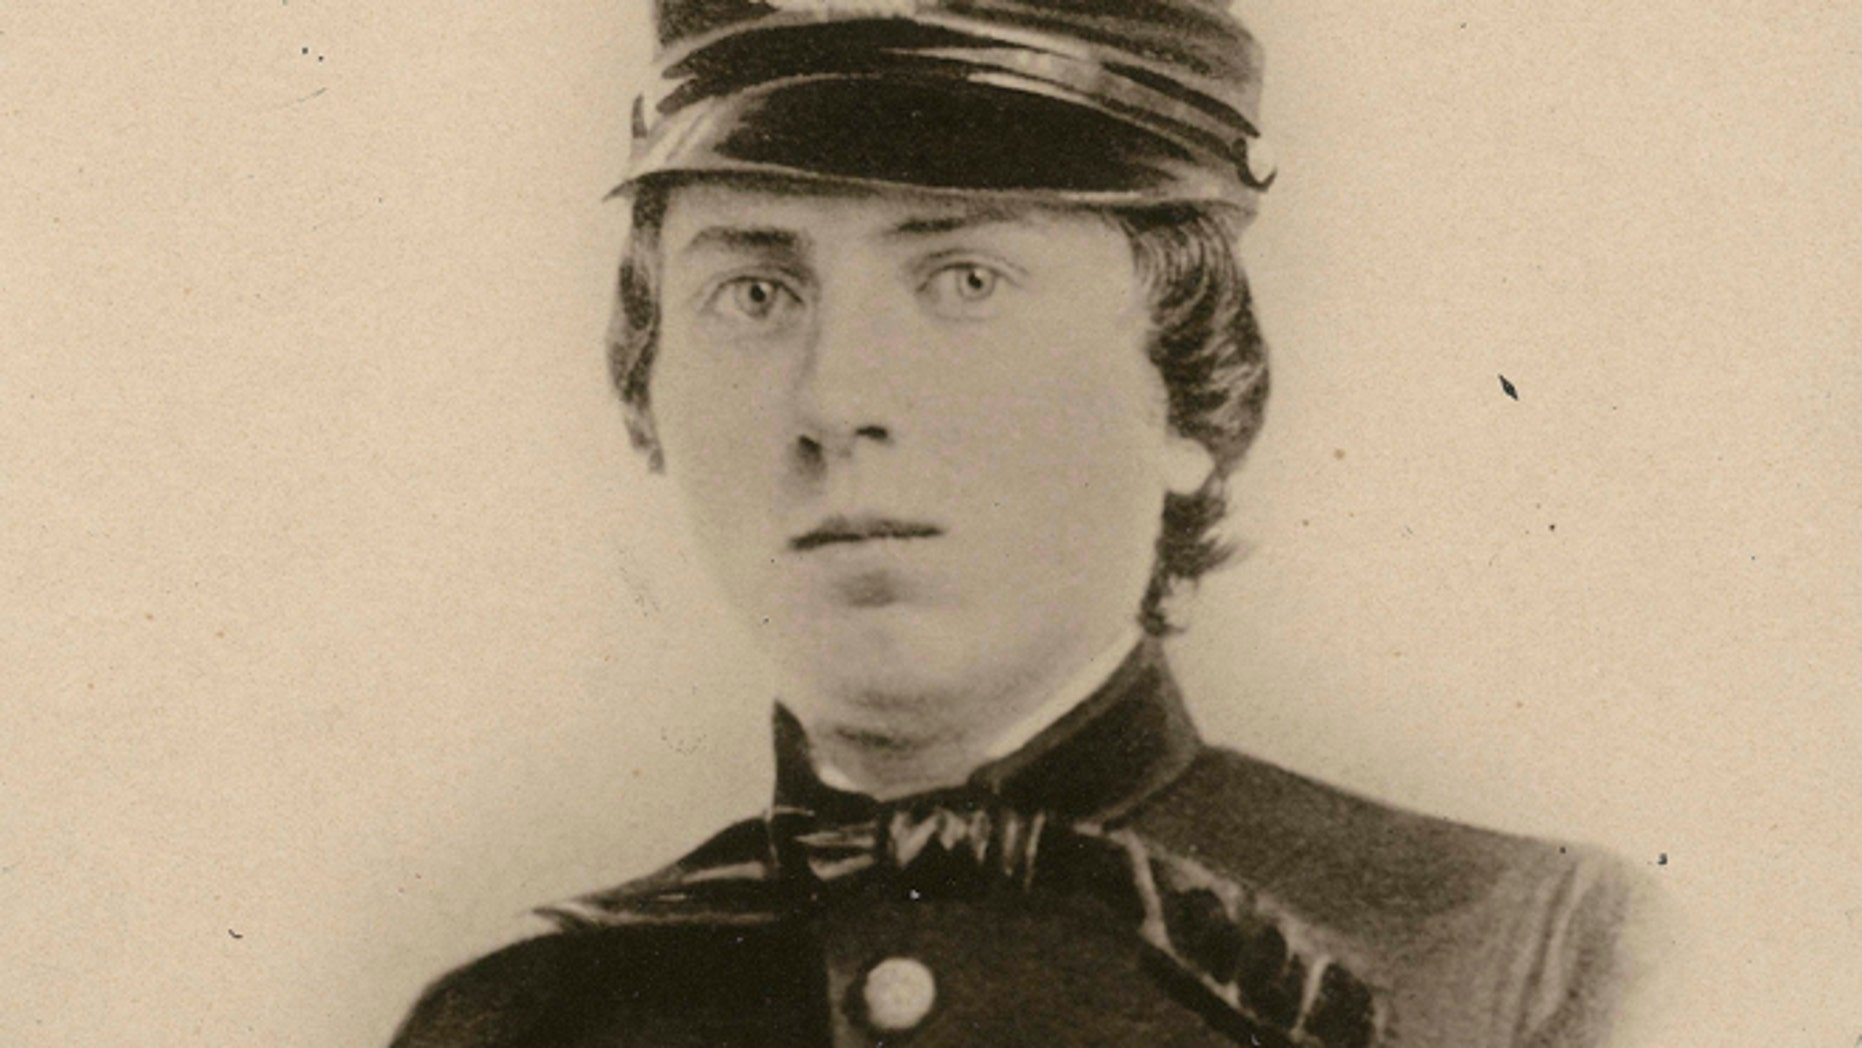 First Lt. Alonzo Cushing is shown in an undated photo provided by the Wisconsin Historical Society. (AP/Wisconsin Historical Society)